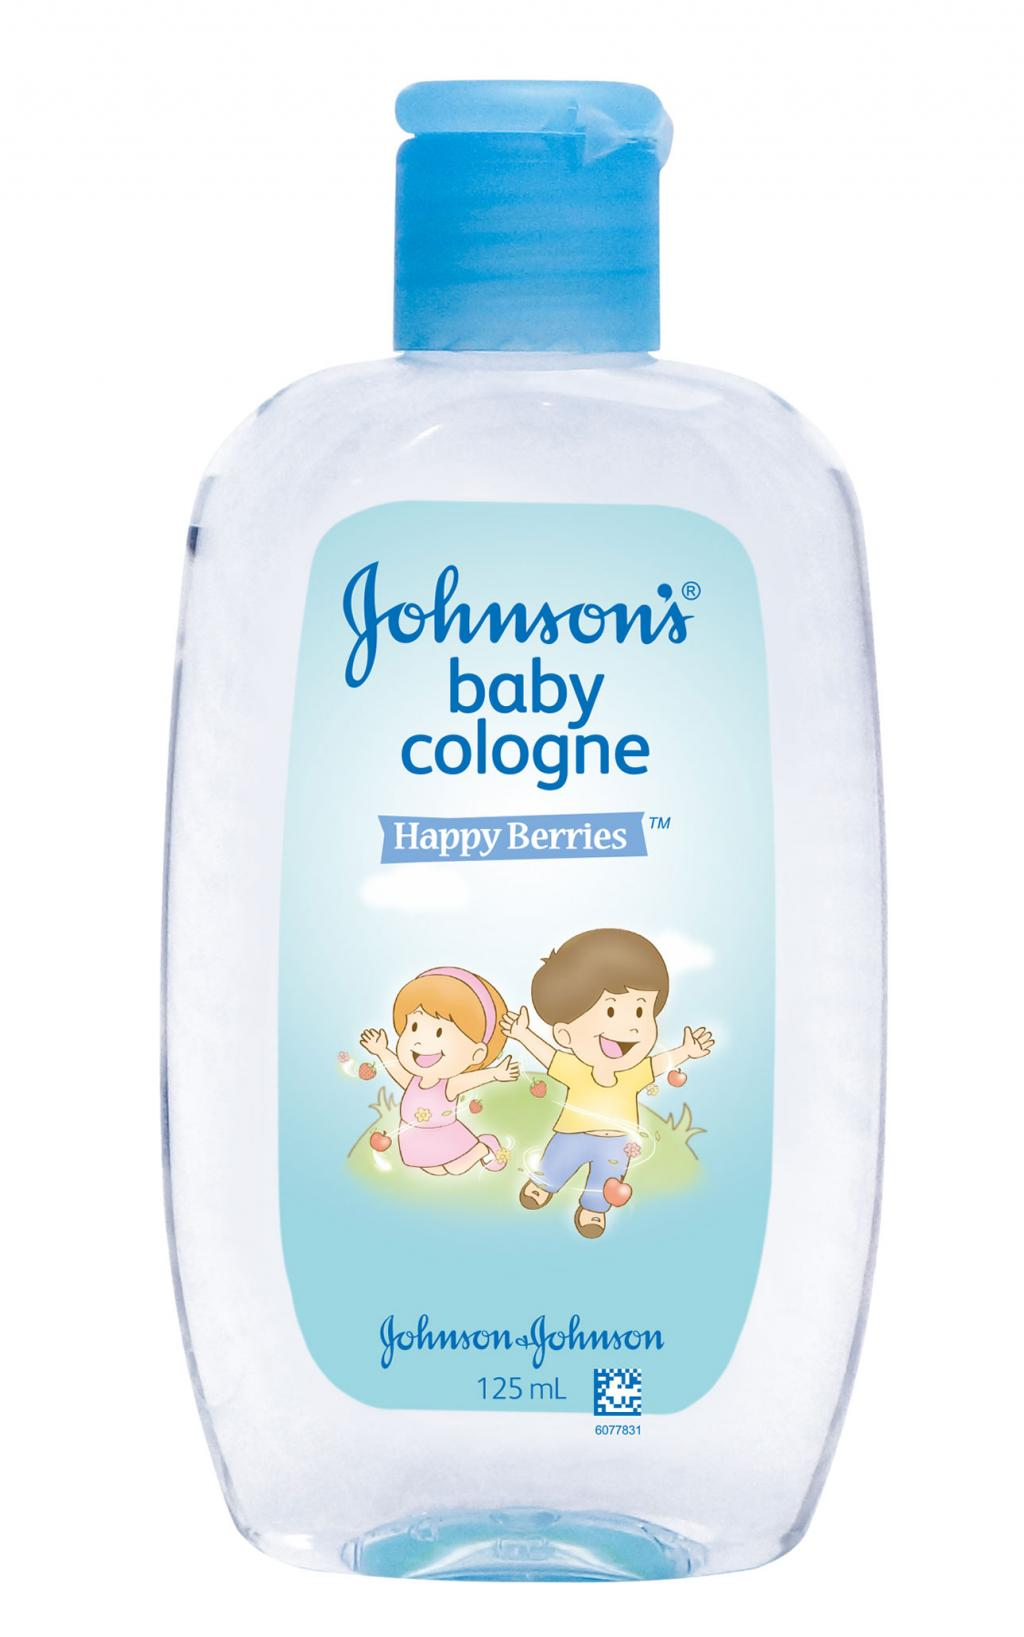 JOHNSON'S® baby cologne happy berries